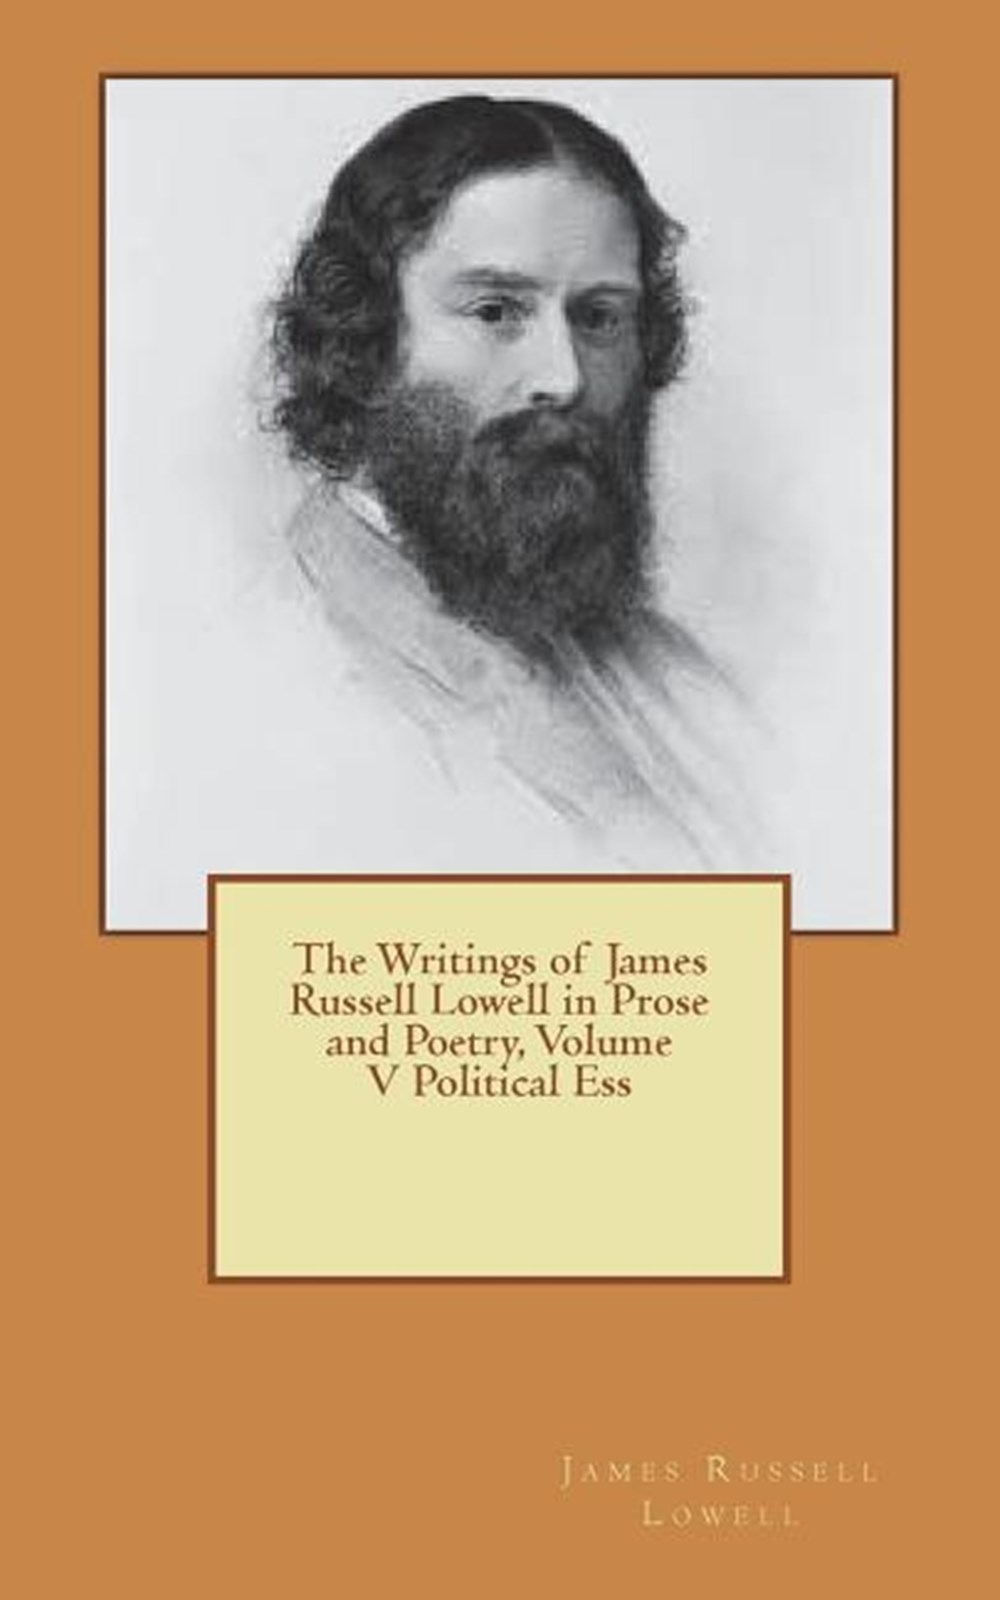 Writings of James Russell Lowell in Prose and Poetry, Volume V Political Ess